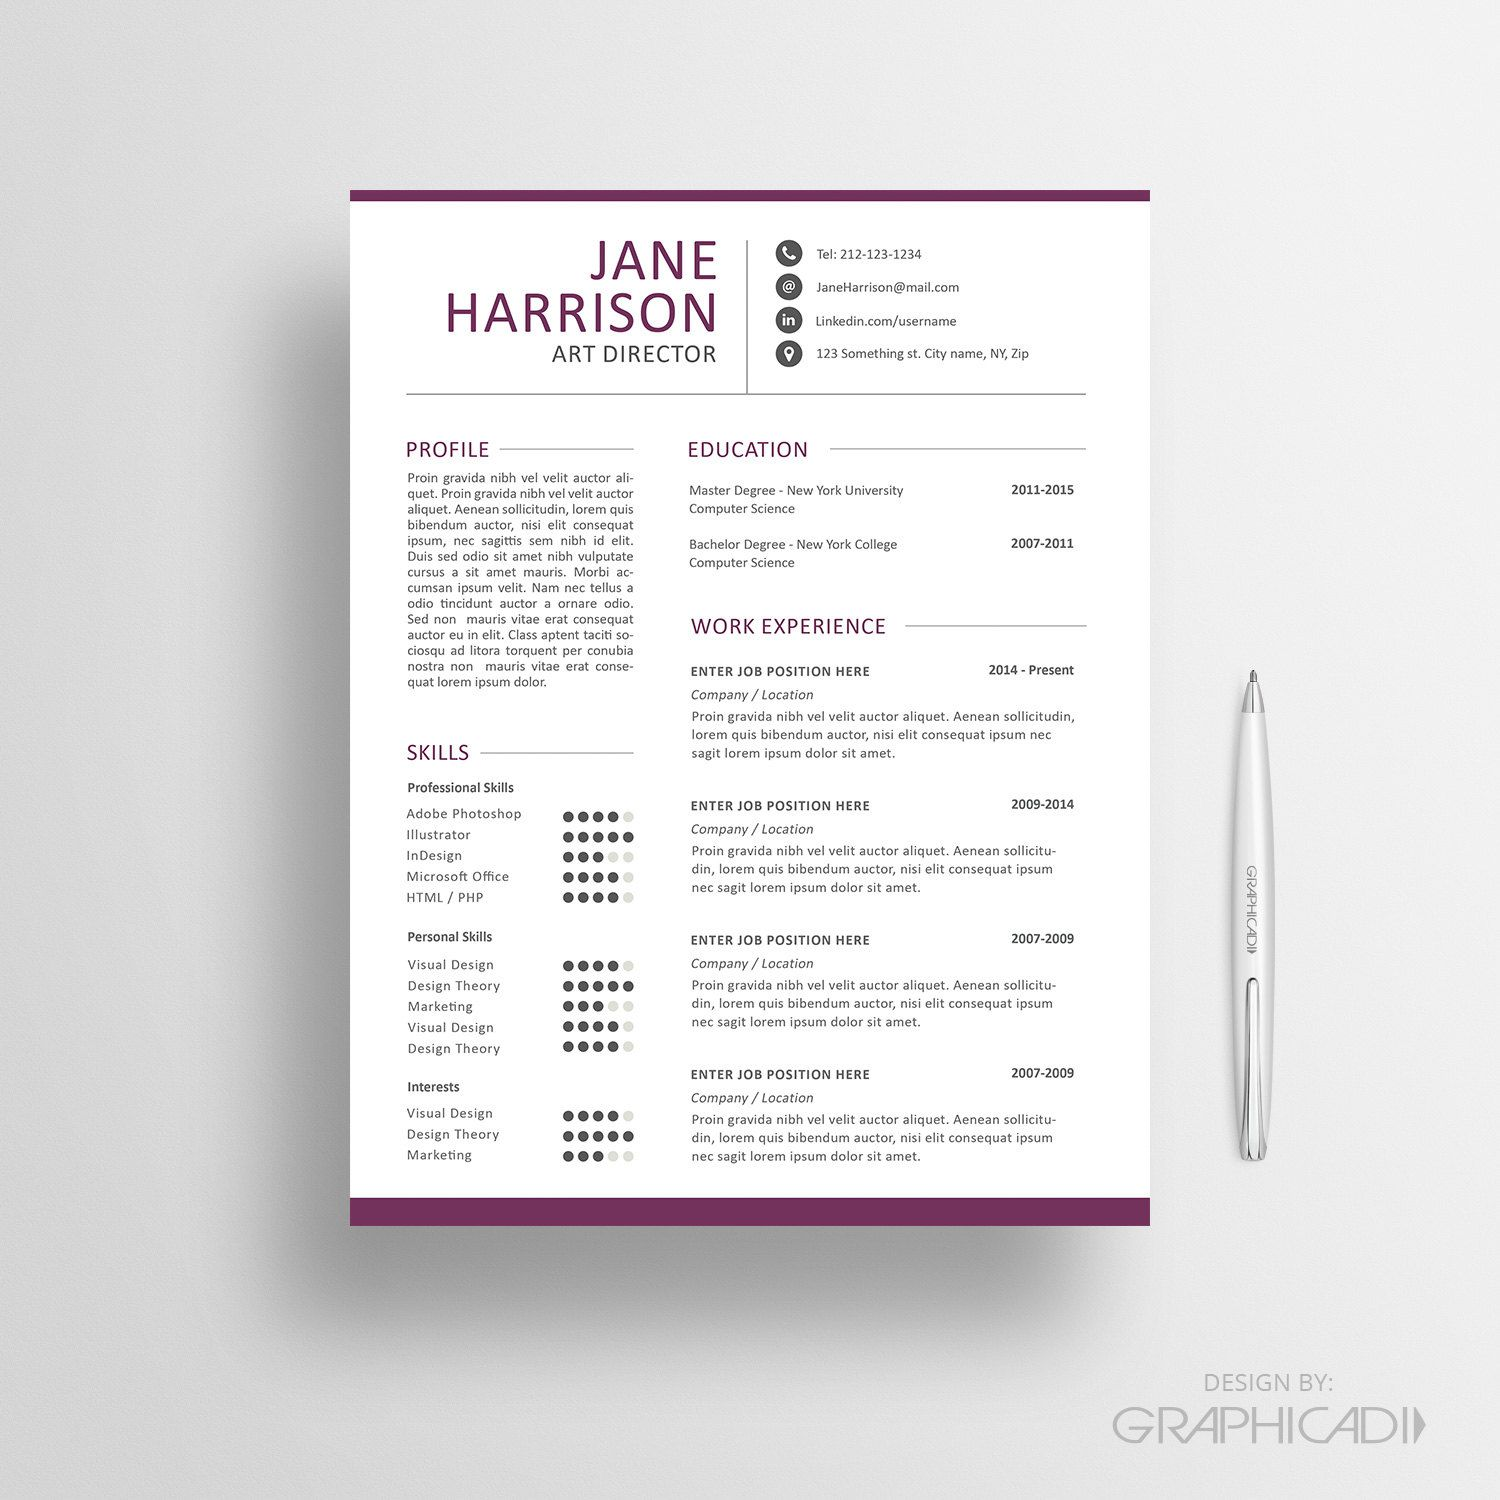 Resume Template Resume Cover Letter Template Resume